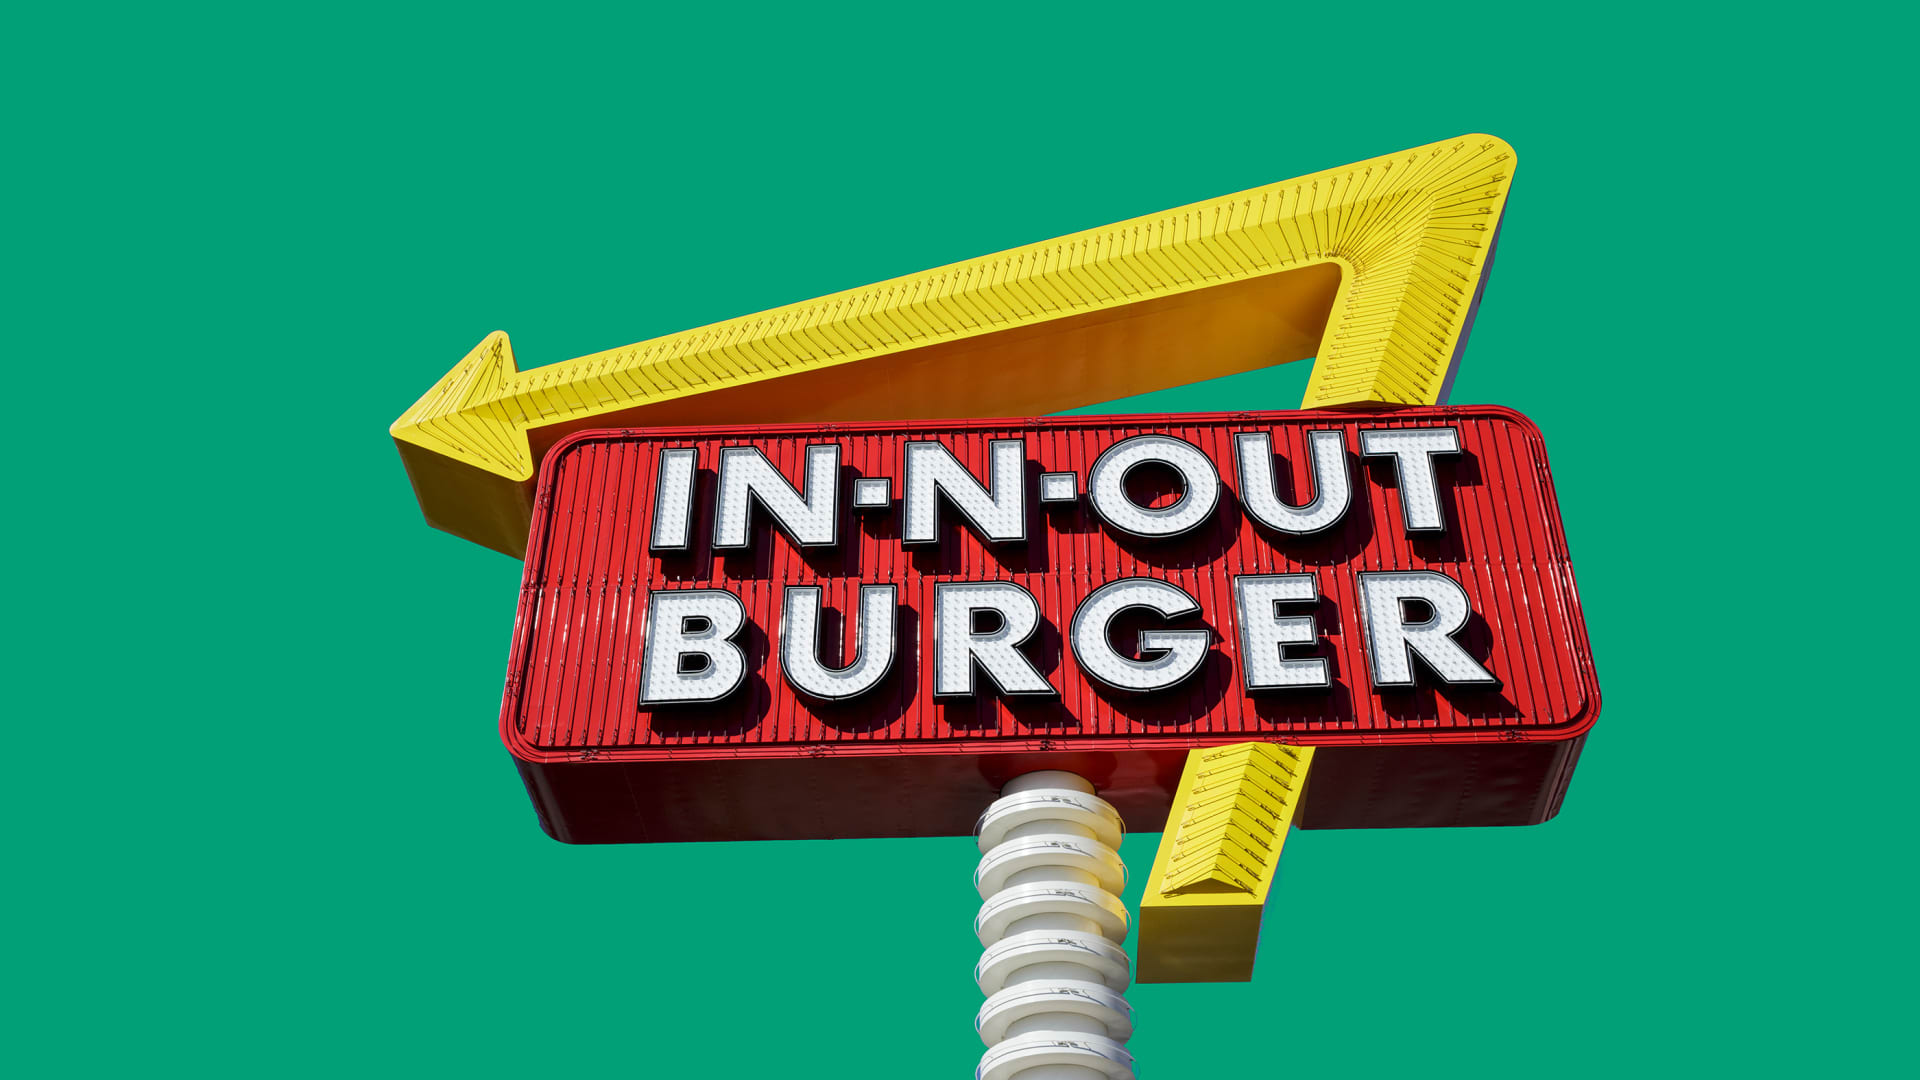 Customers Just Waited 12 Hours at In-N-Out Burger. Here's the Big Reason Why (and How to Copy It)